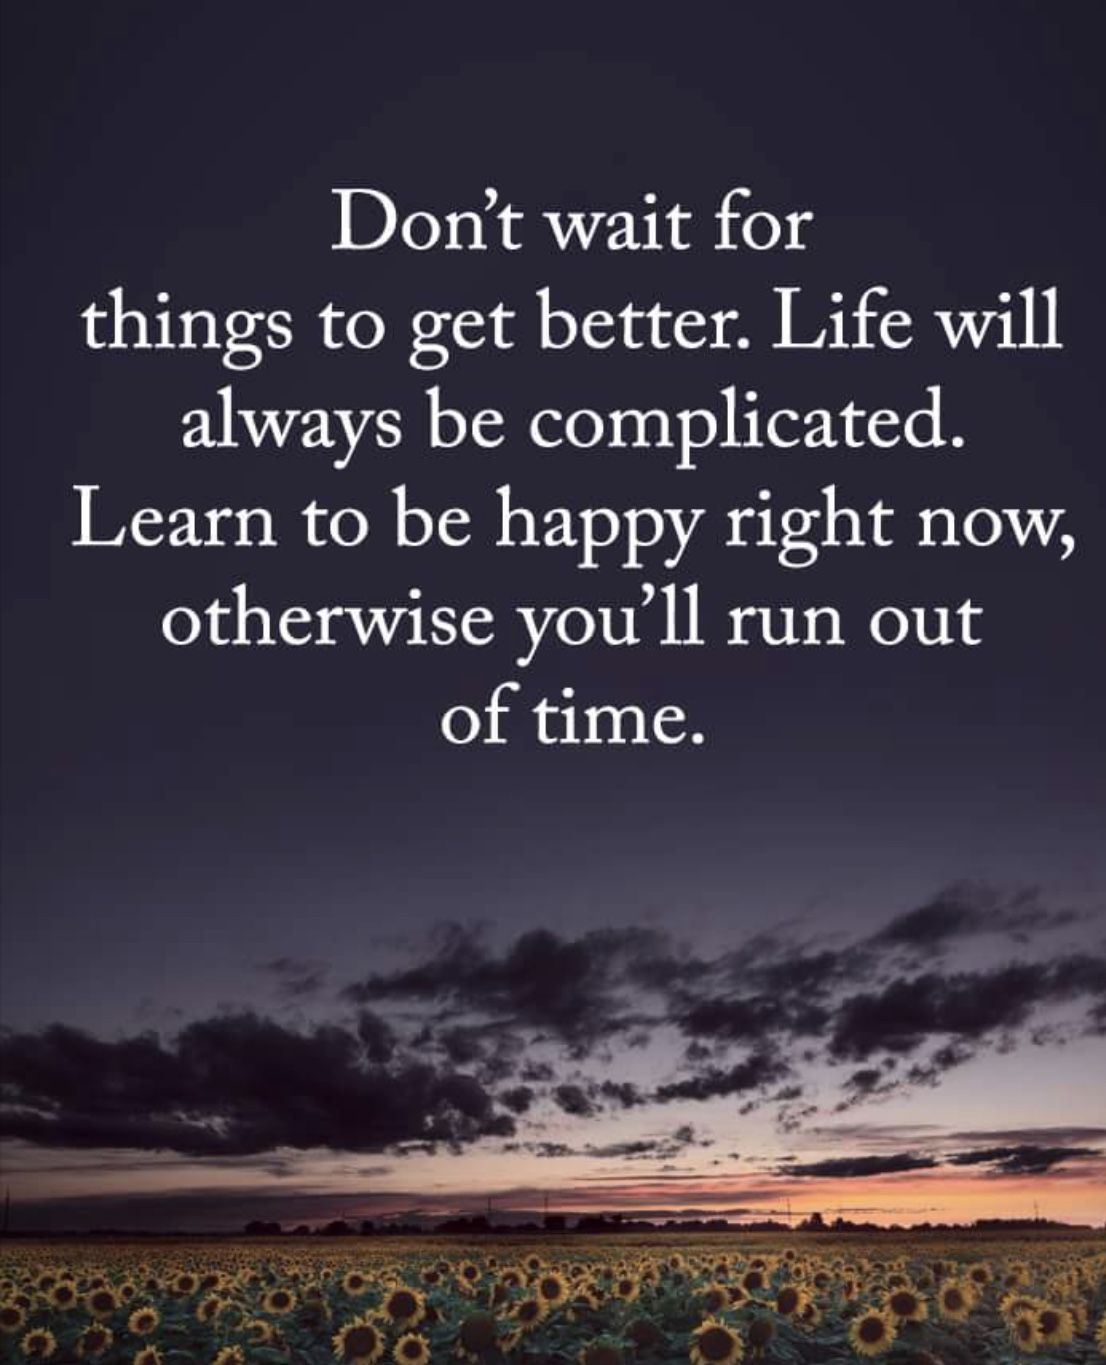 Pin By Marlene On Wisdom Wisdom Quotes Words Quotes Life Quotes